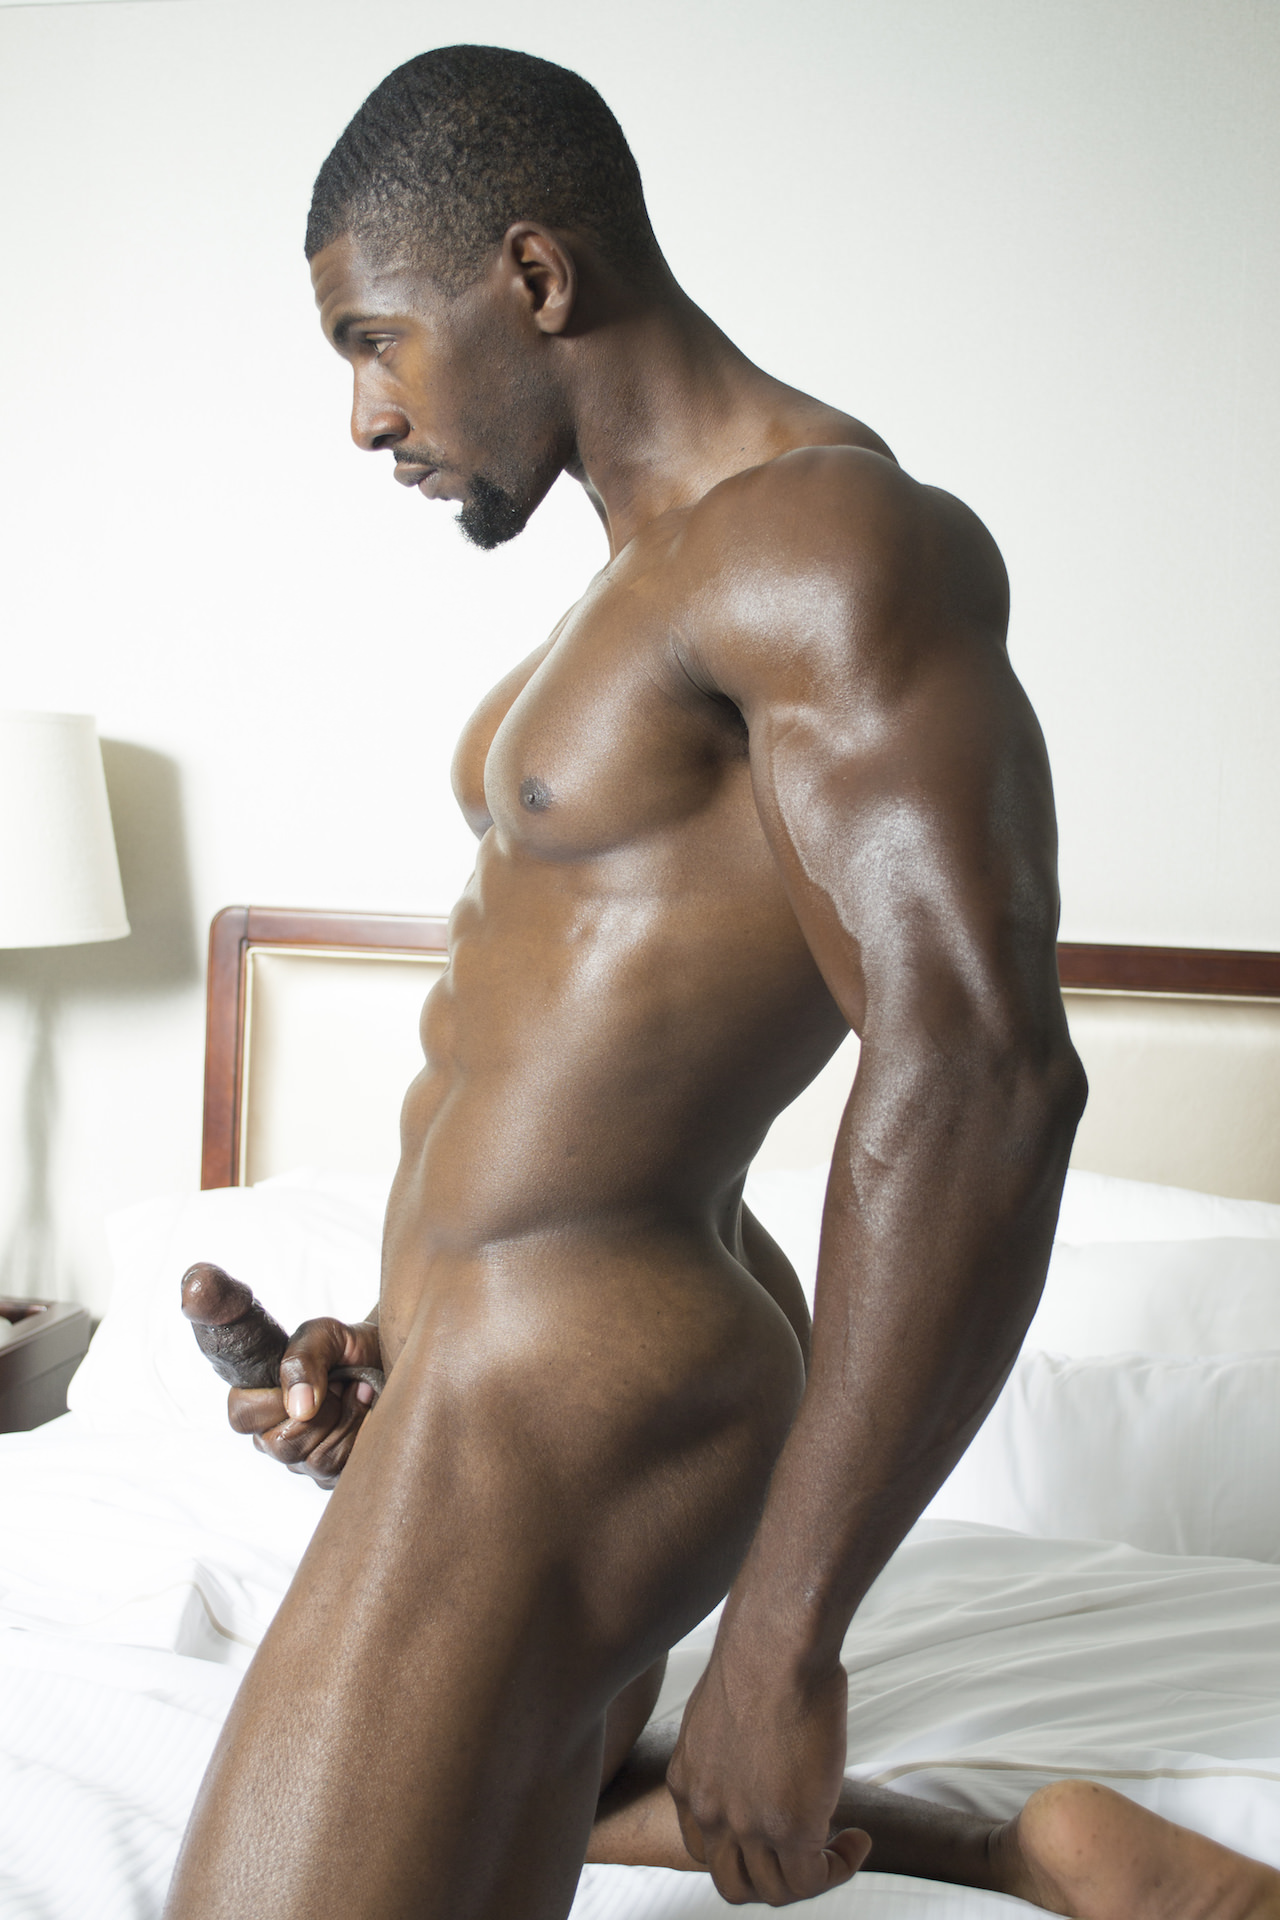 from Erick gay black nude photos